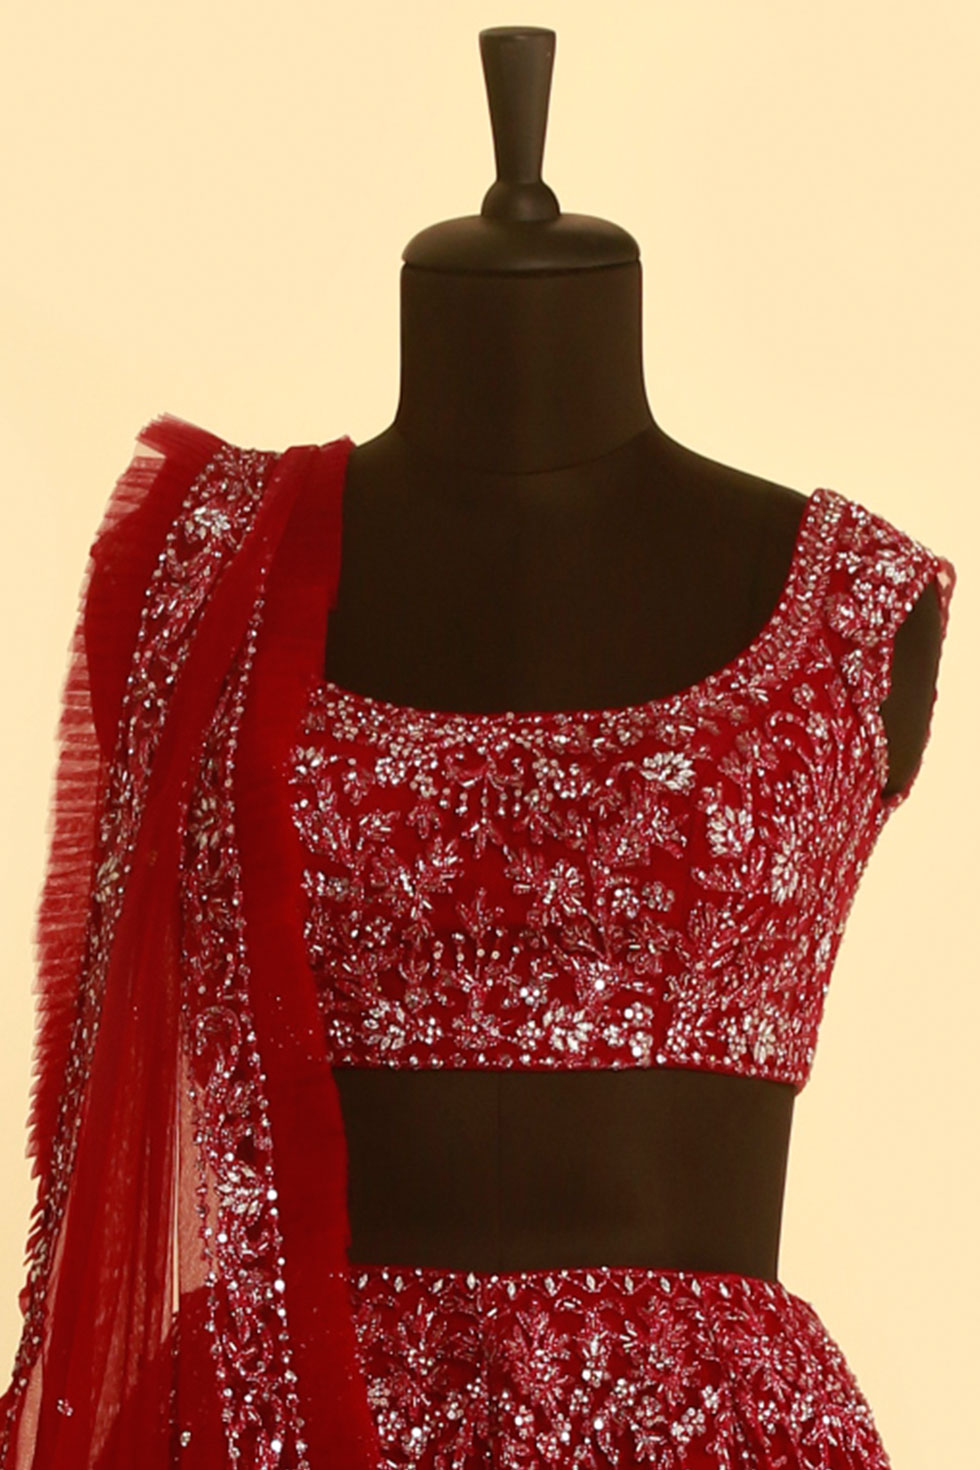 Red lehenga set with silver embellishment and matching frill dupatta